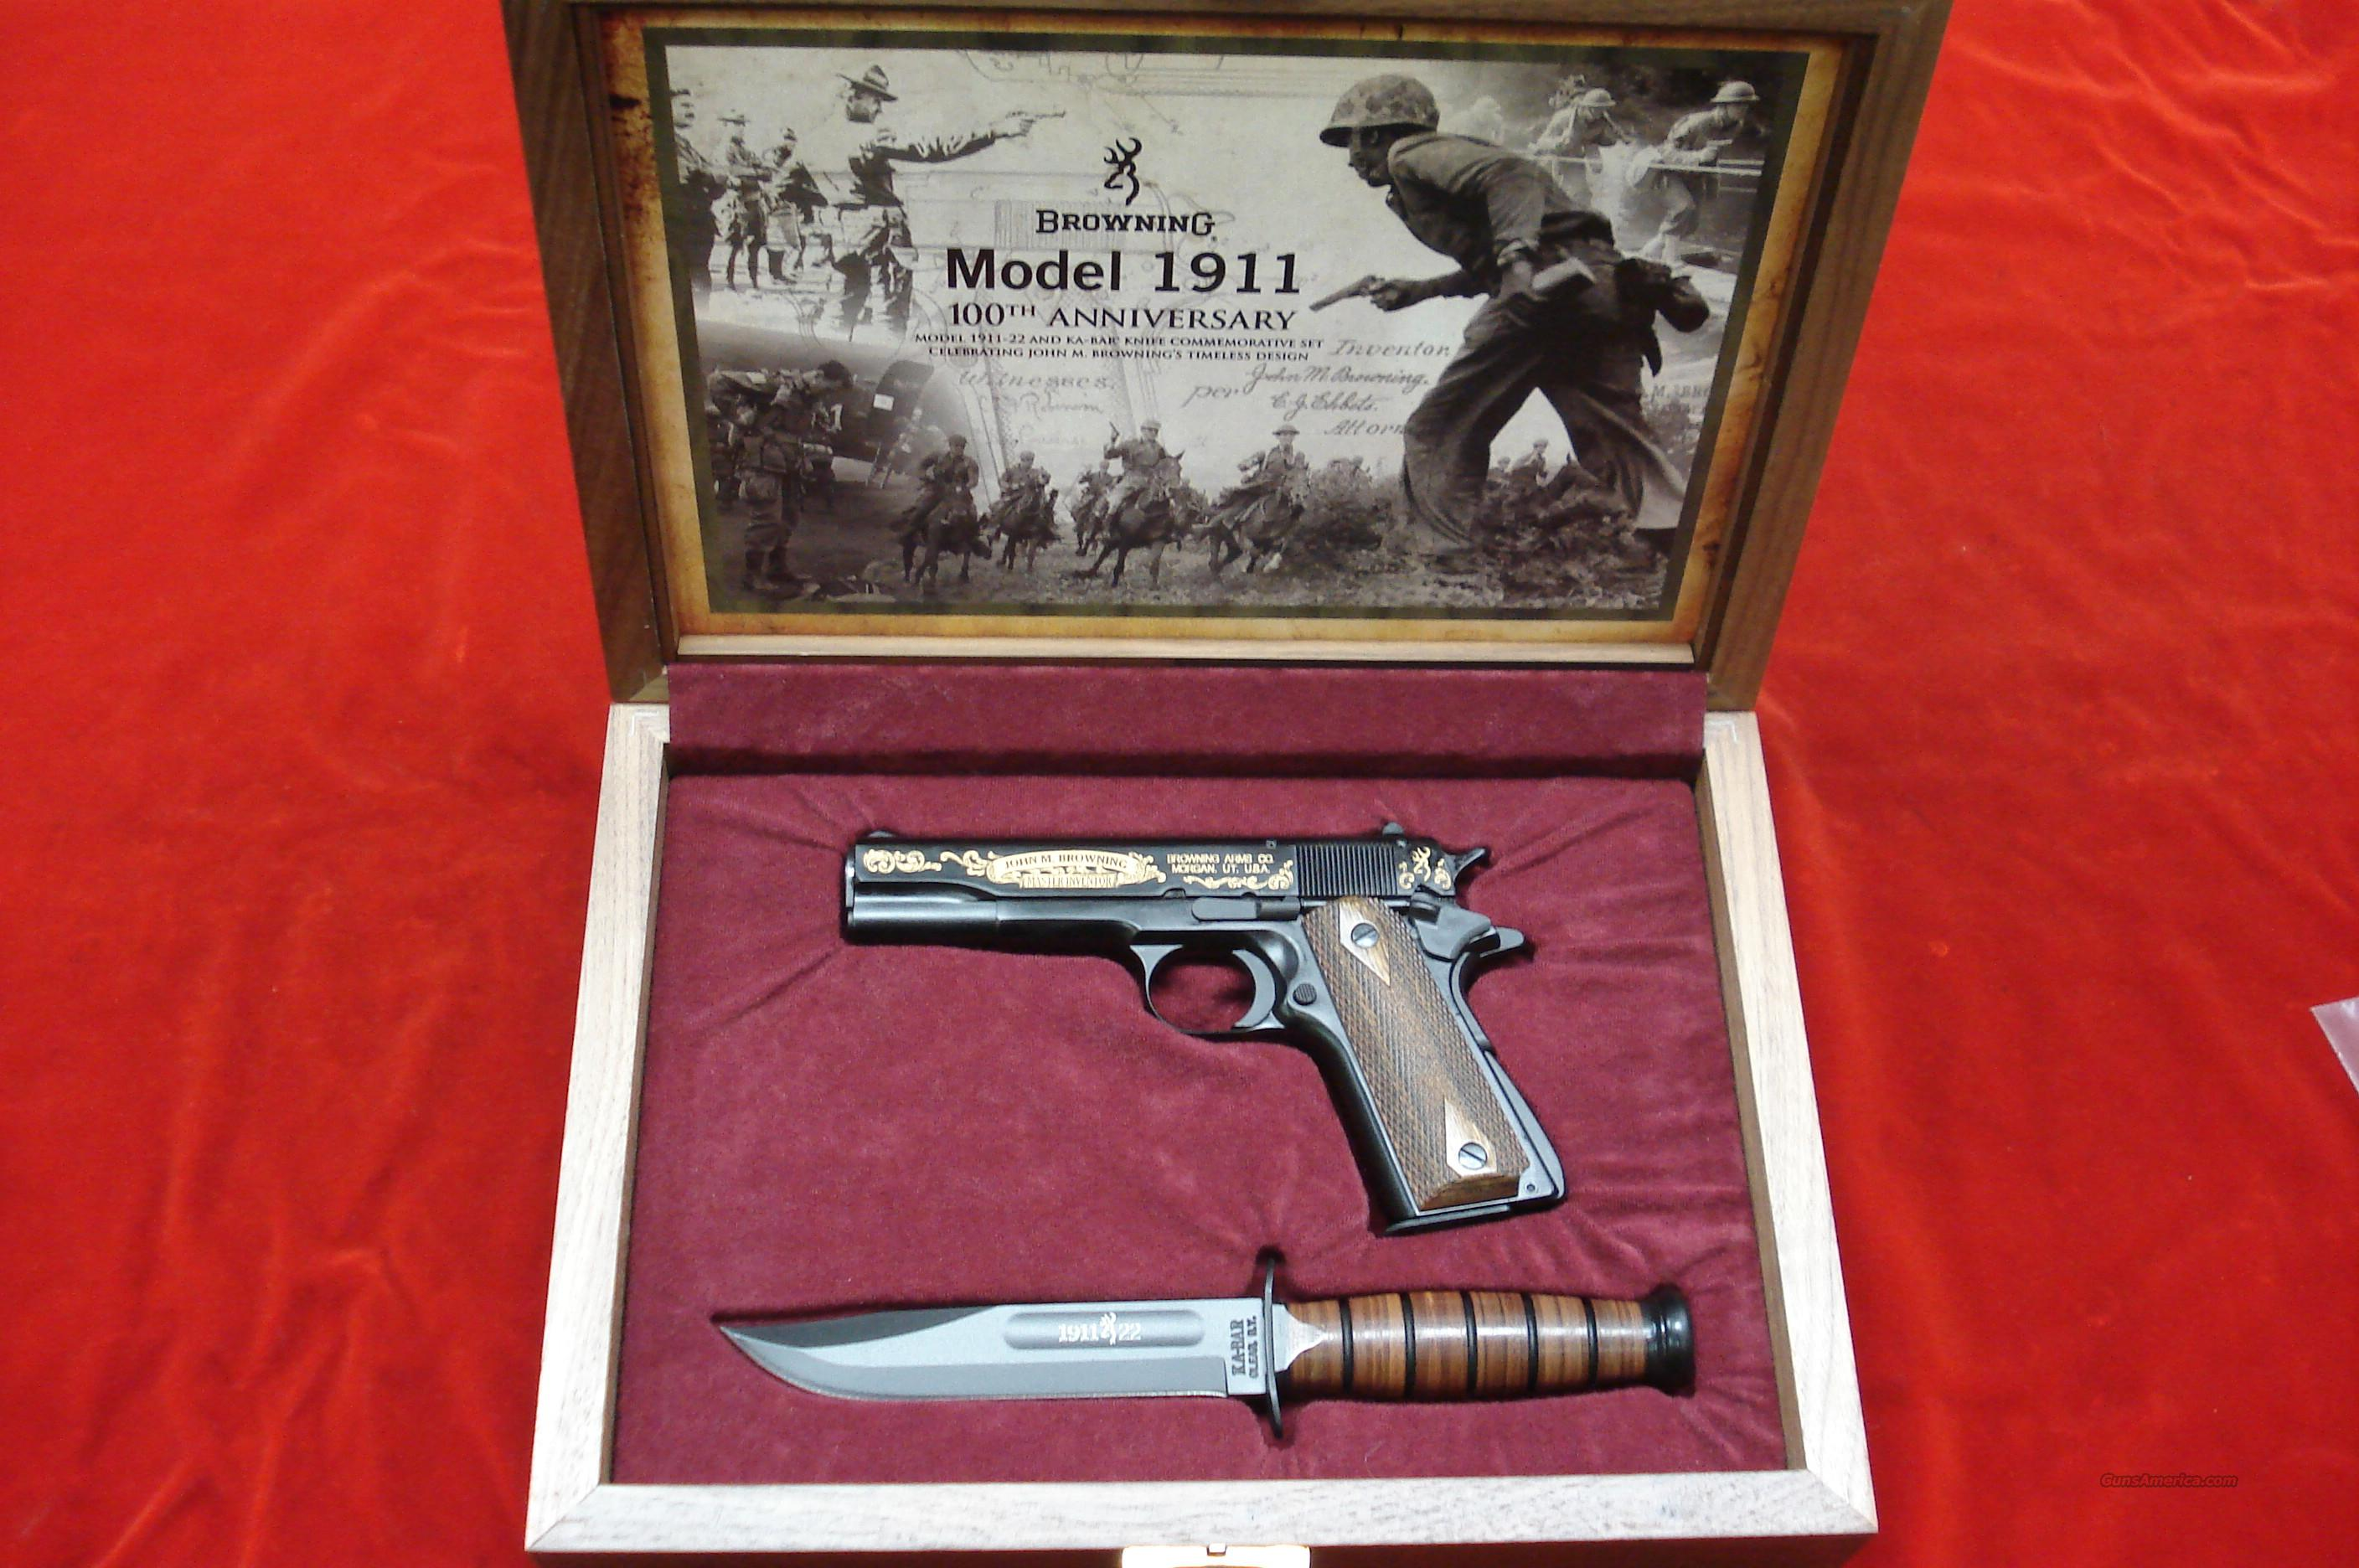 BROWNING 1911-22 CASED COMMEMORATIVE WITH KA-BAR AND DISPLAY CASE NEW  Guns > Pistols > Browning Pistols > Other Autos